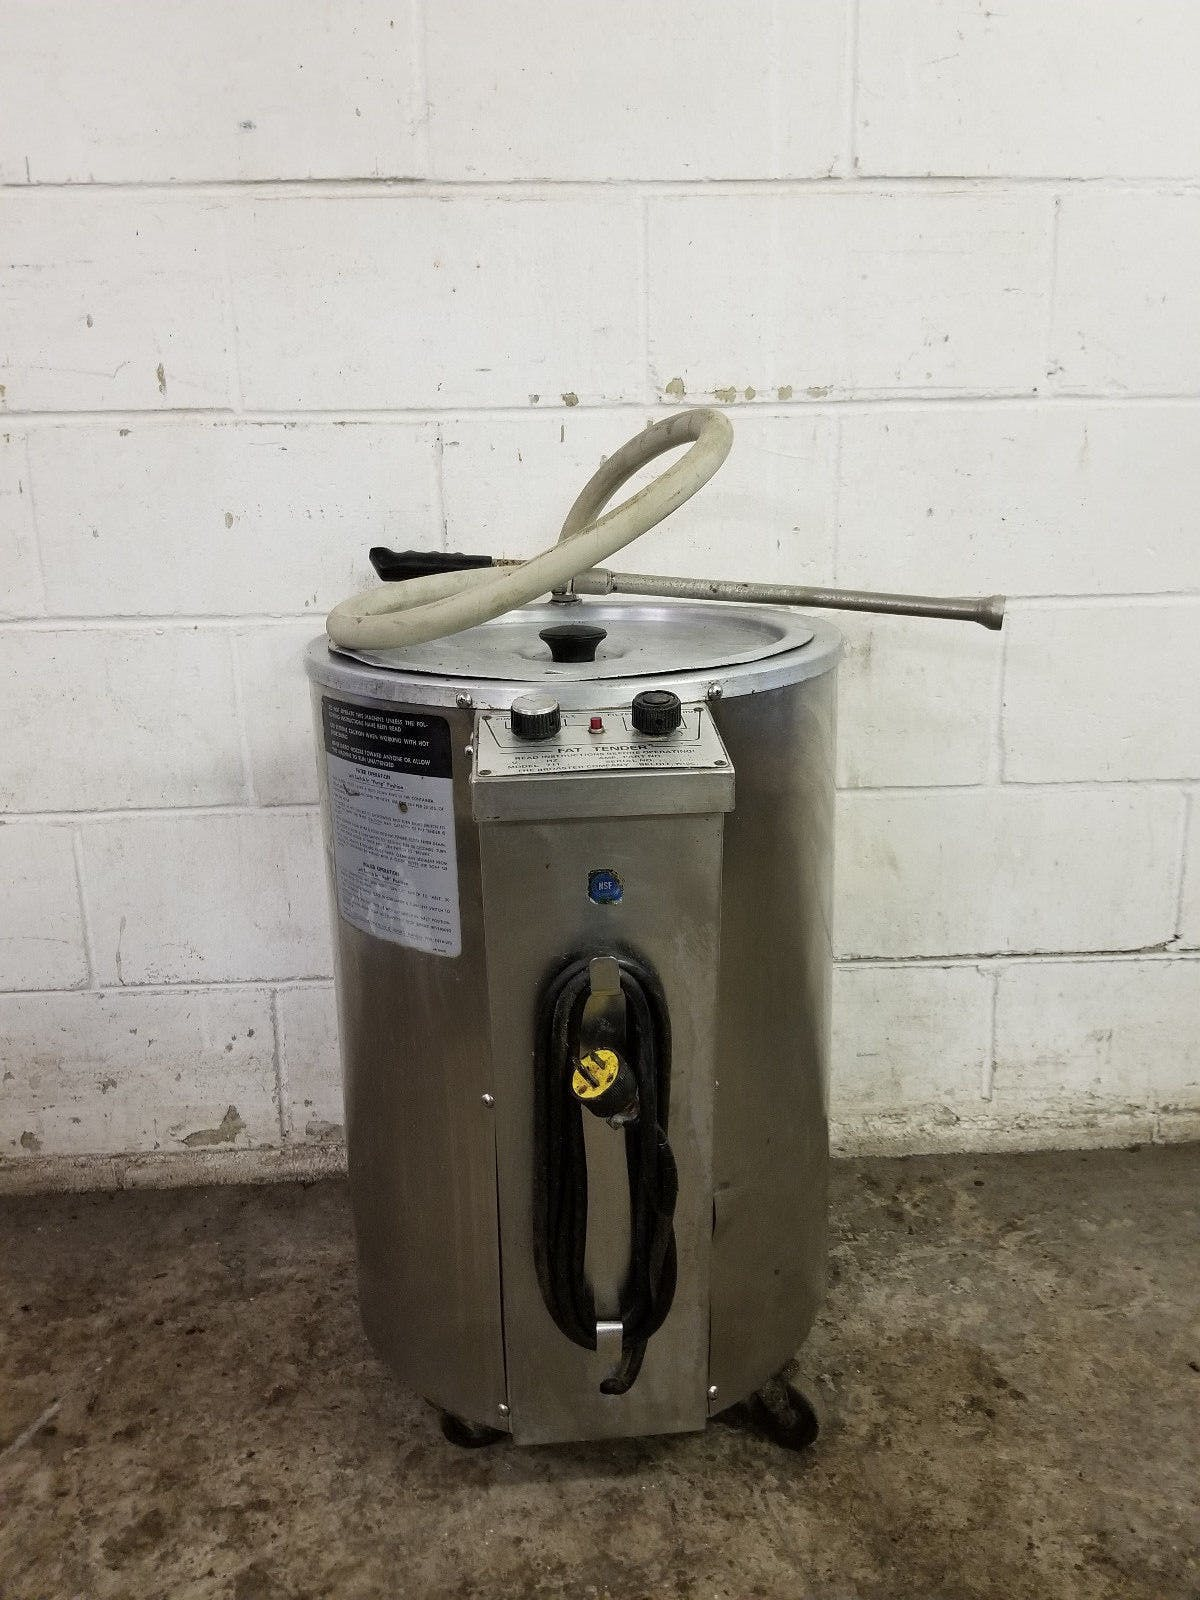 Broaster Fat Tender Machine 711 New Grease Hose Tested 120v - sold by Jak's Restaurant Supply